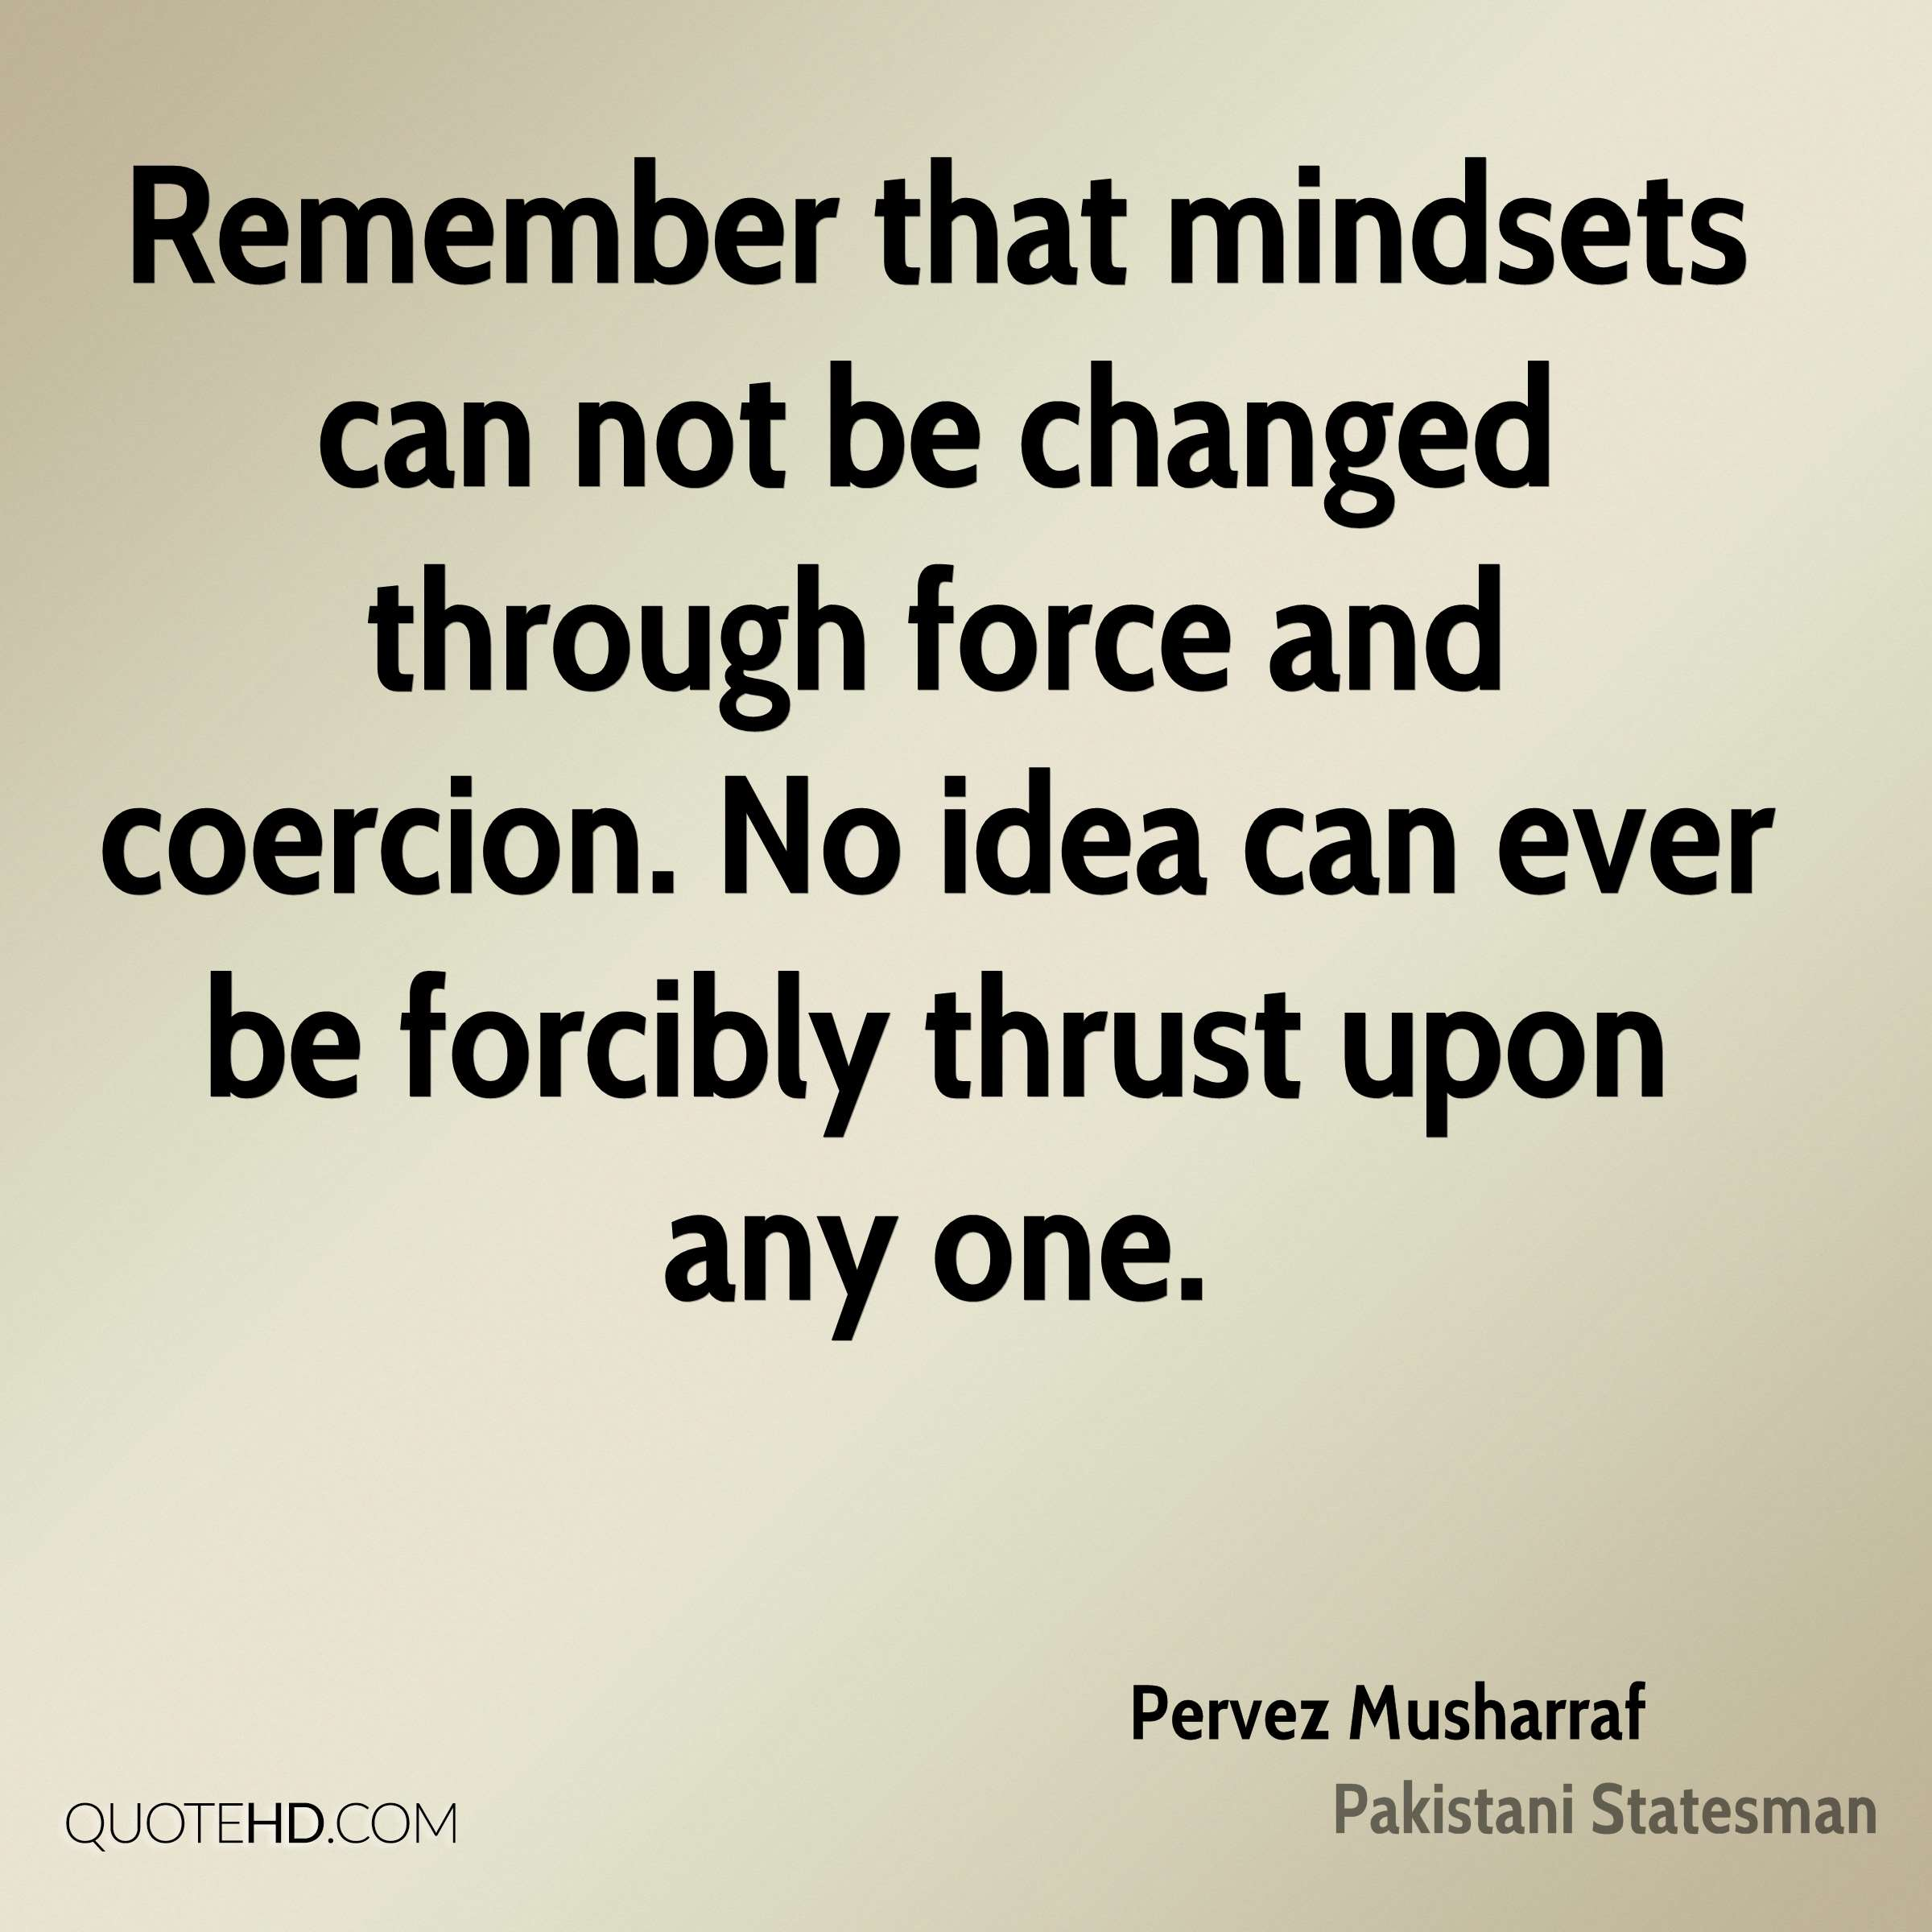 Remember that mindsets can not be changed through force and coercion. No idea can ever be forcibly thrust upon any one.